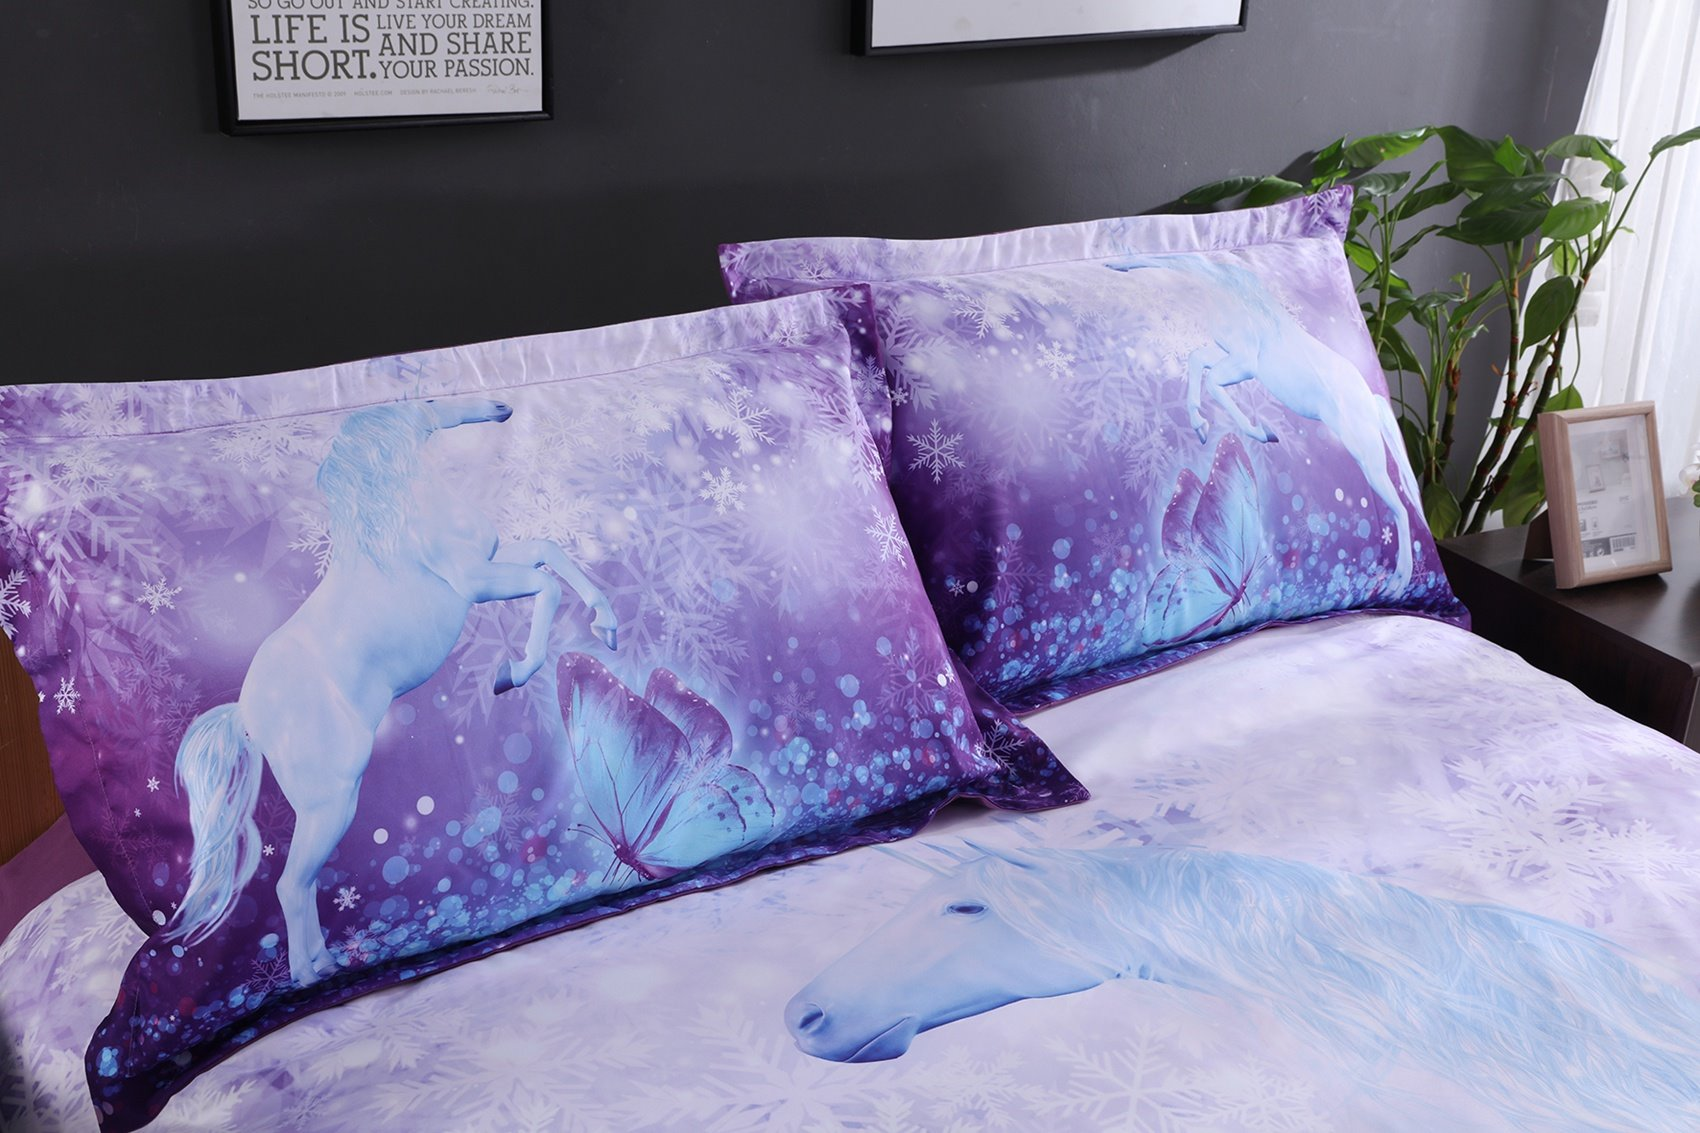 Find The Best Flash Sales Ads For Upcoming Bedding